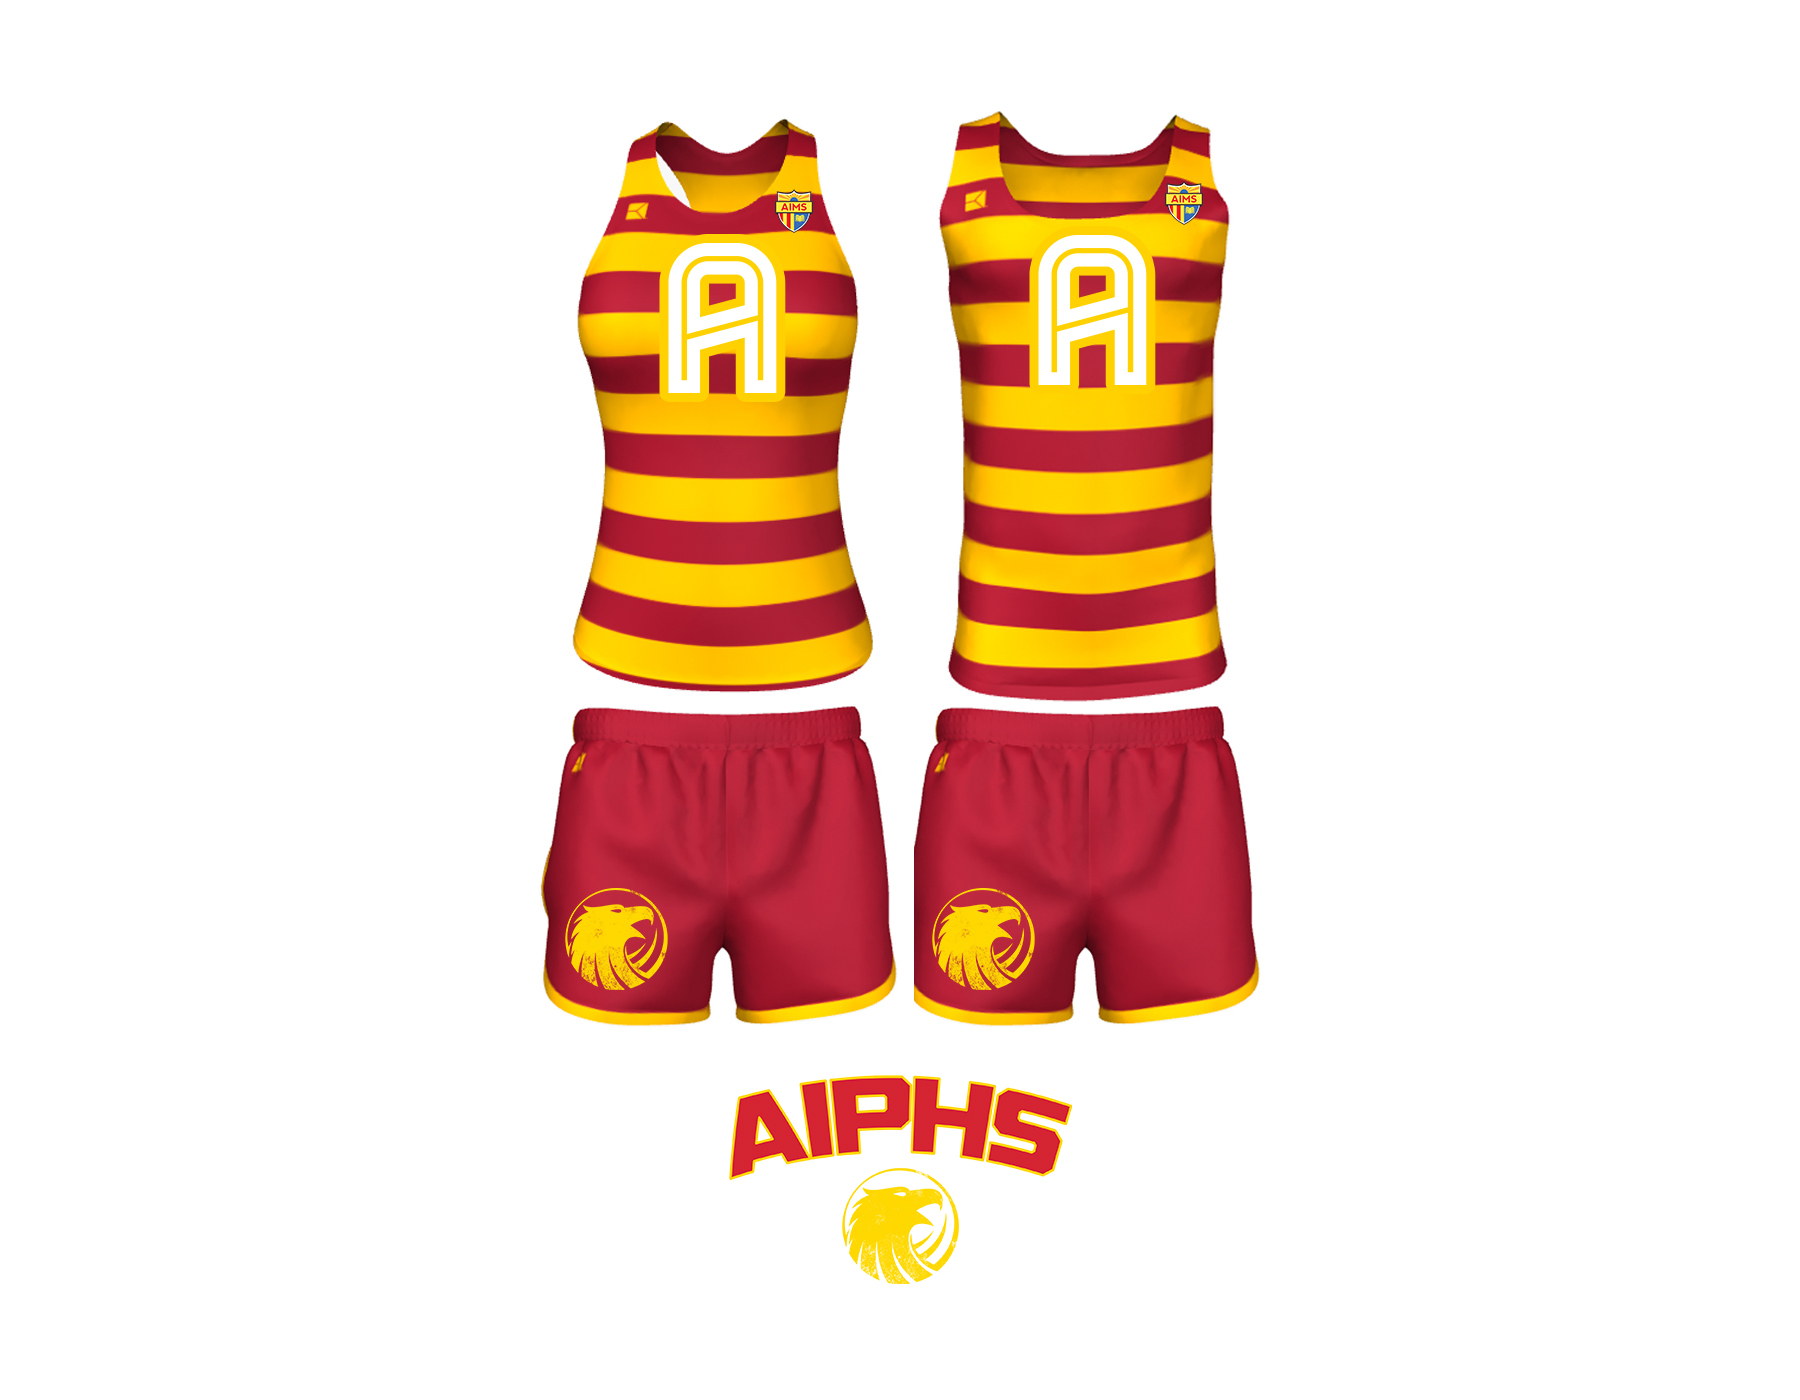 """AIPHS """"Modern Throwback"""" Cross Country Uniforms    The AIPHS Cross Country uniforms are the most fully customized AIMS sports uniforms to date. These """"throwback"""" uniforms feature classic alternating red and athletic gold rugby stripes and introduces the new AIMS """"Block A"""" that is prominent in the center of the singlet athletic top. The red endurance shorts evoke modernity, are edged with athletic gold binding, and feature the Golden Eagle Spiritmark on the right thigh."""